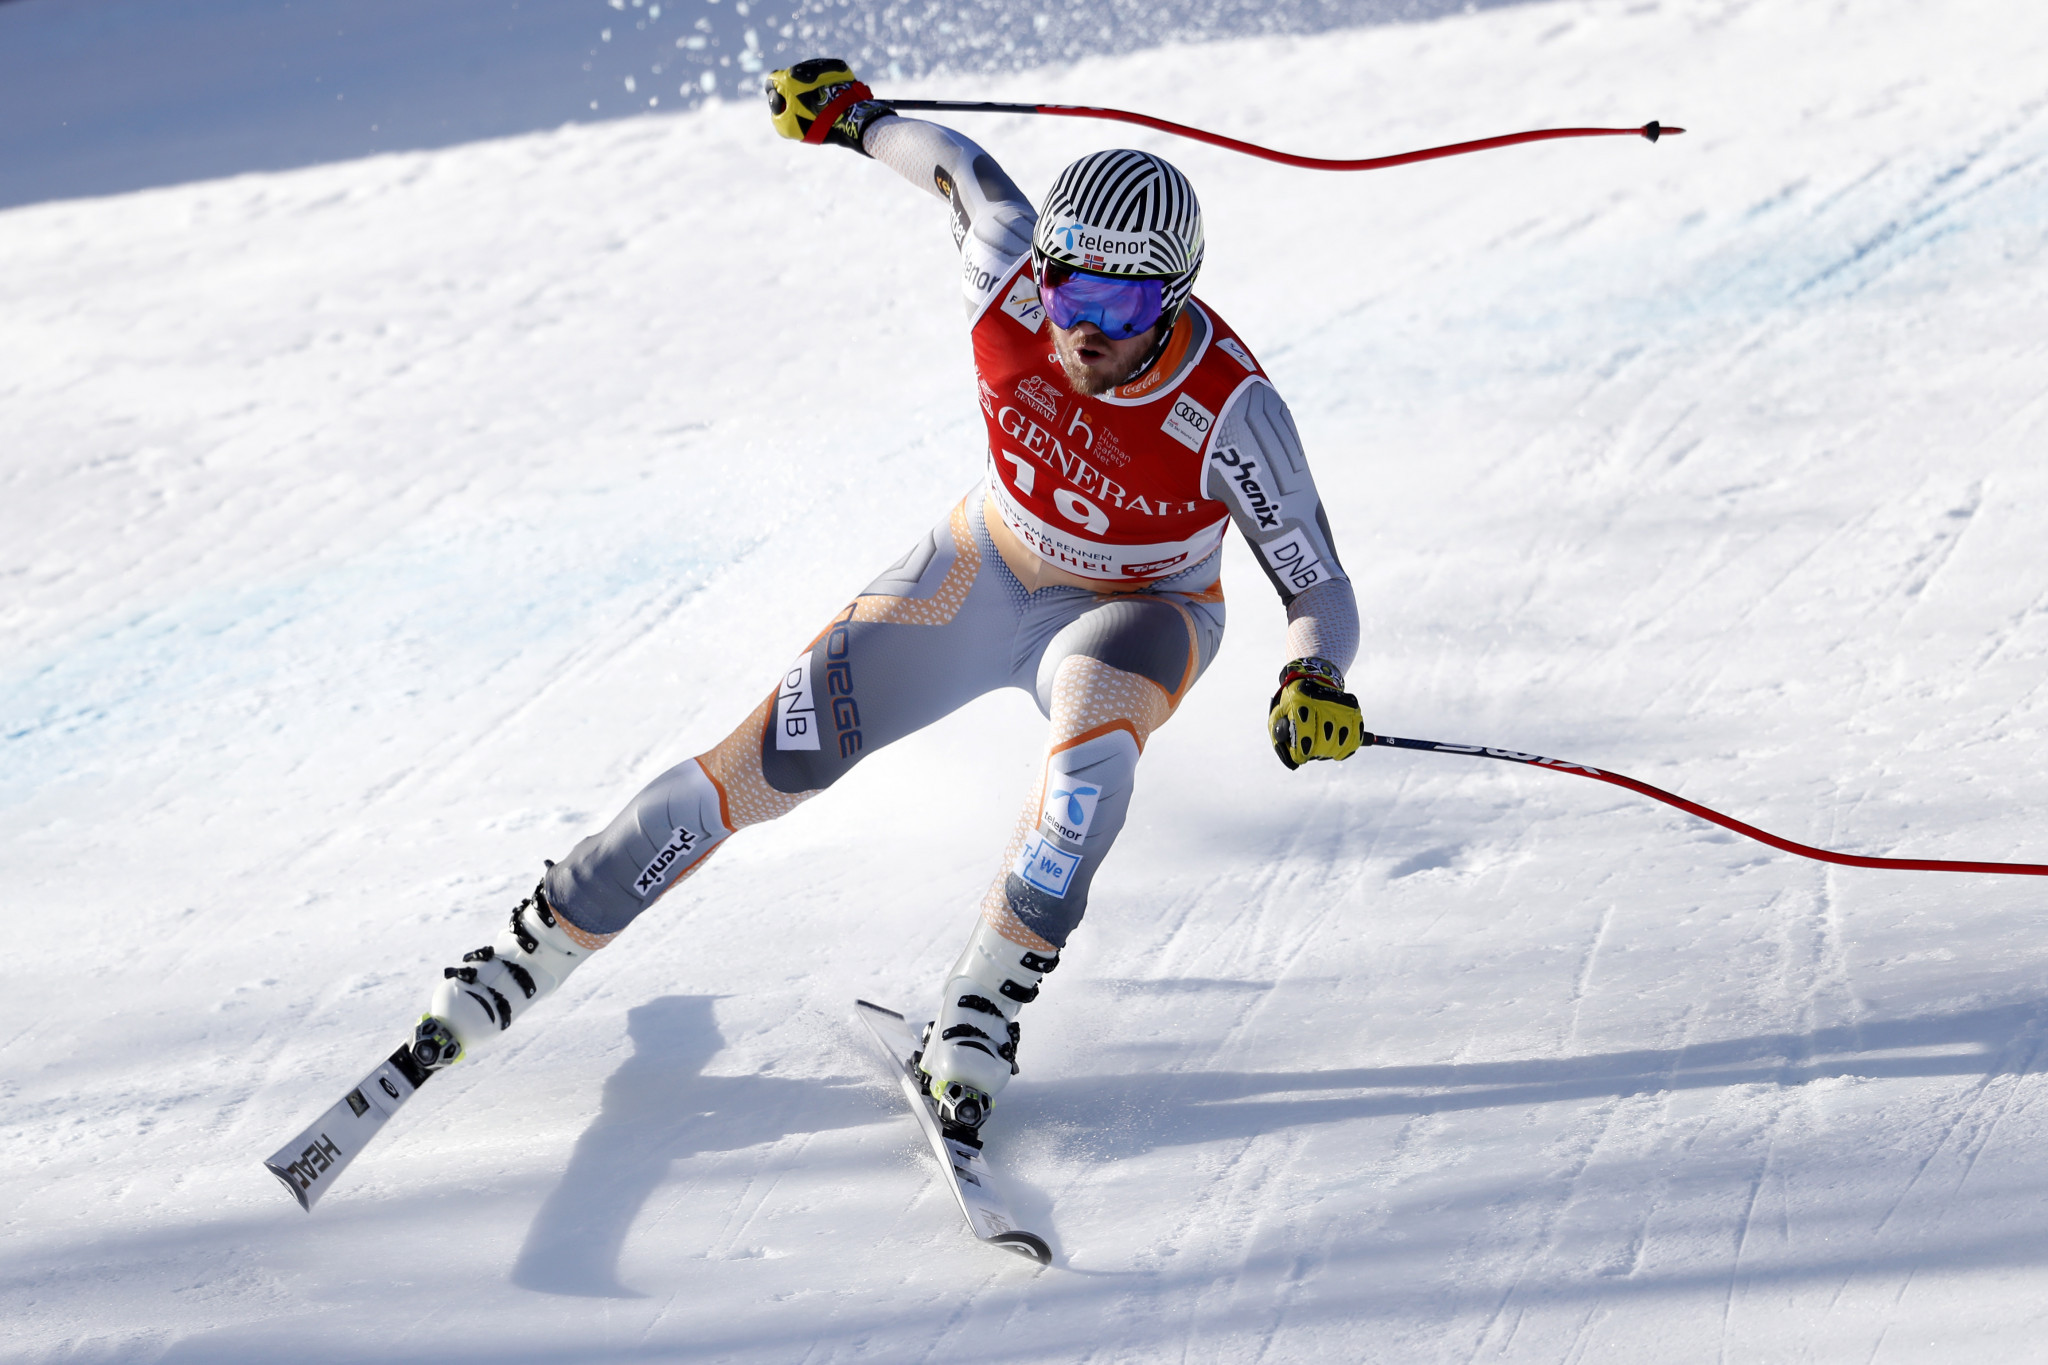 Norway's Jansrud back on top in men's super-G, as FIS World Cup starts in Kitzbühel